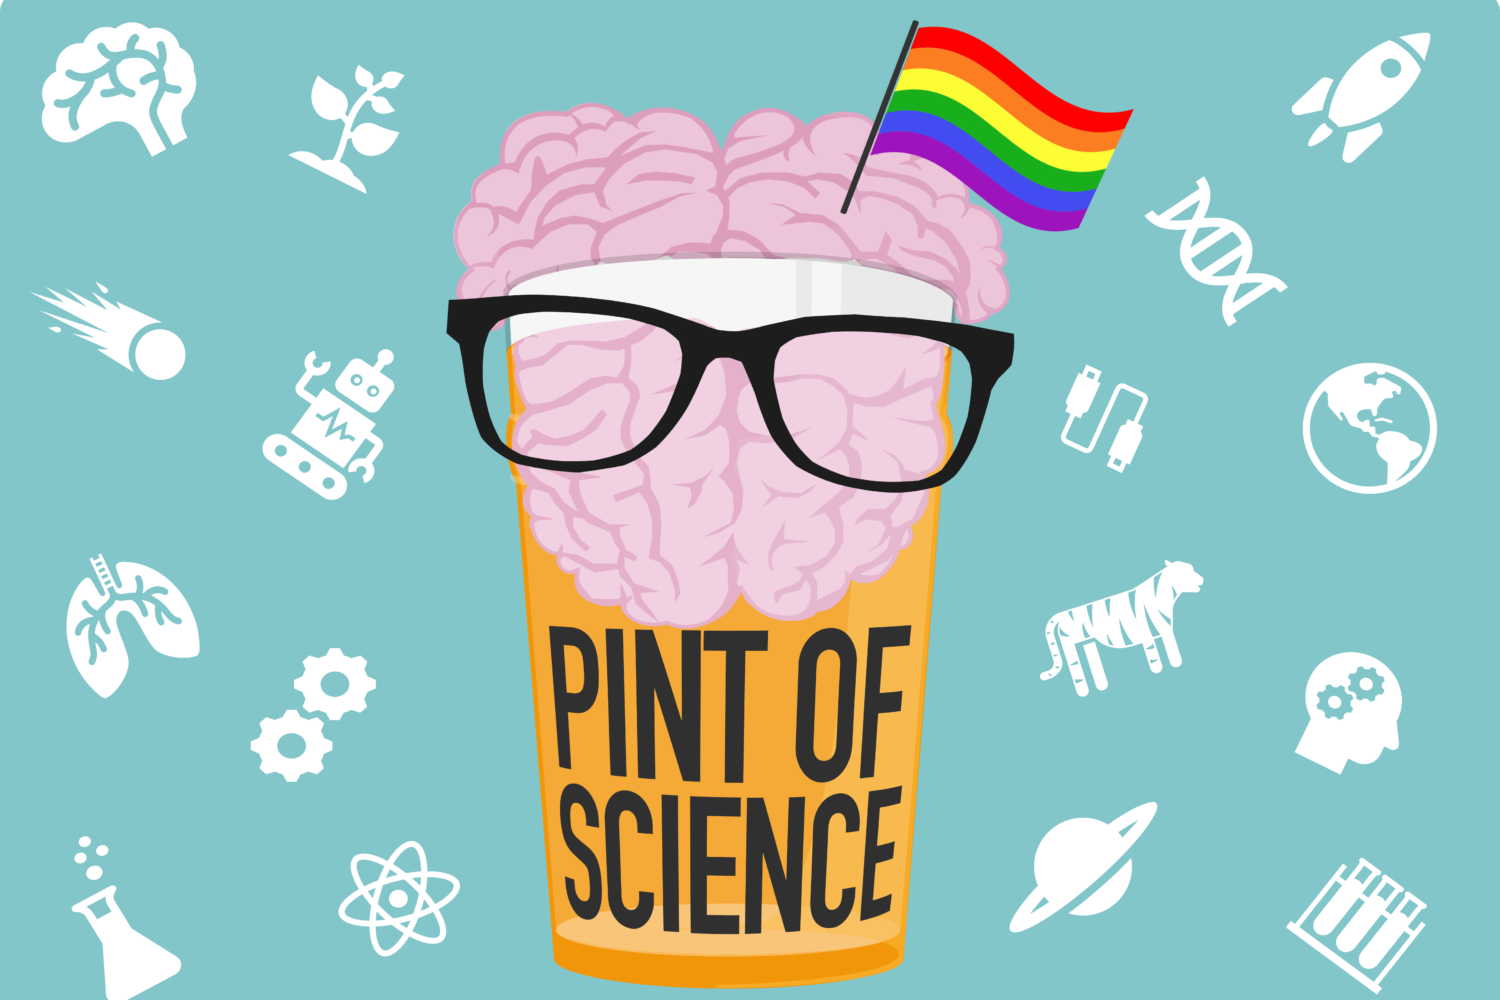 Pride of Science logo